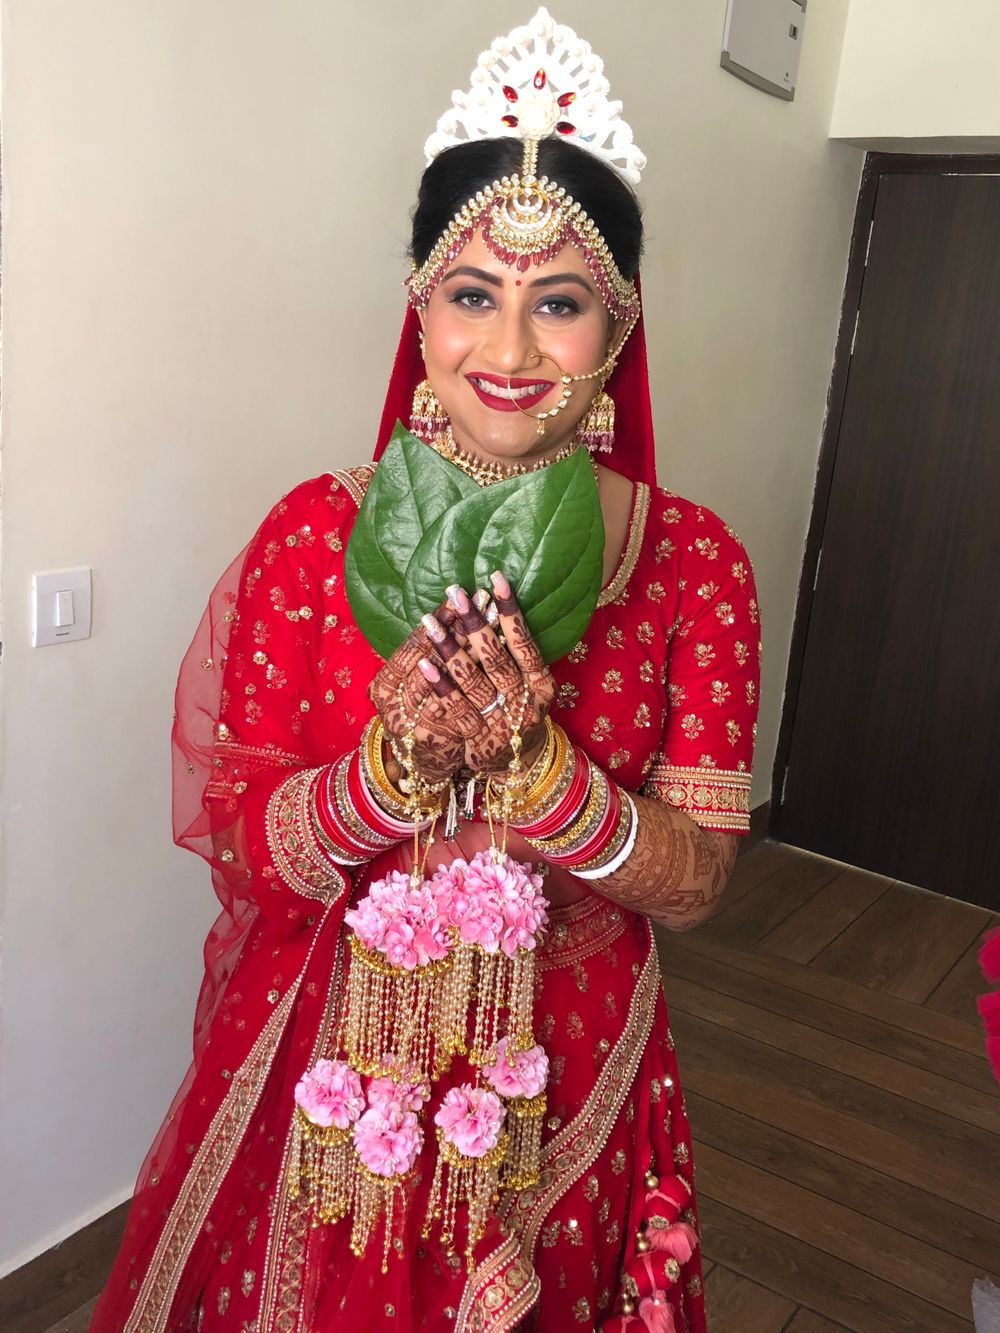 Photo From Ankita - By Makeovers By Kamakshi Soni